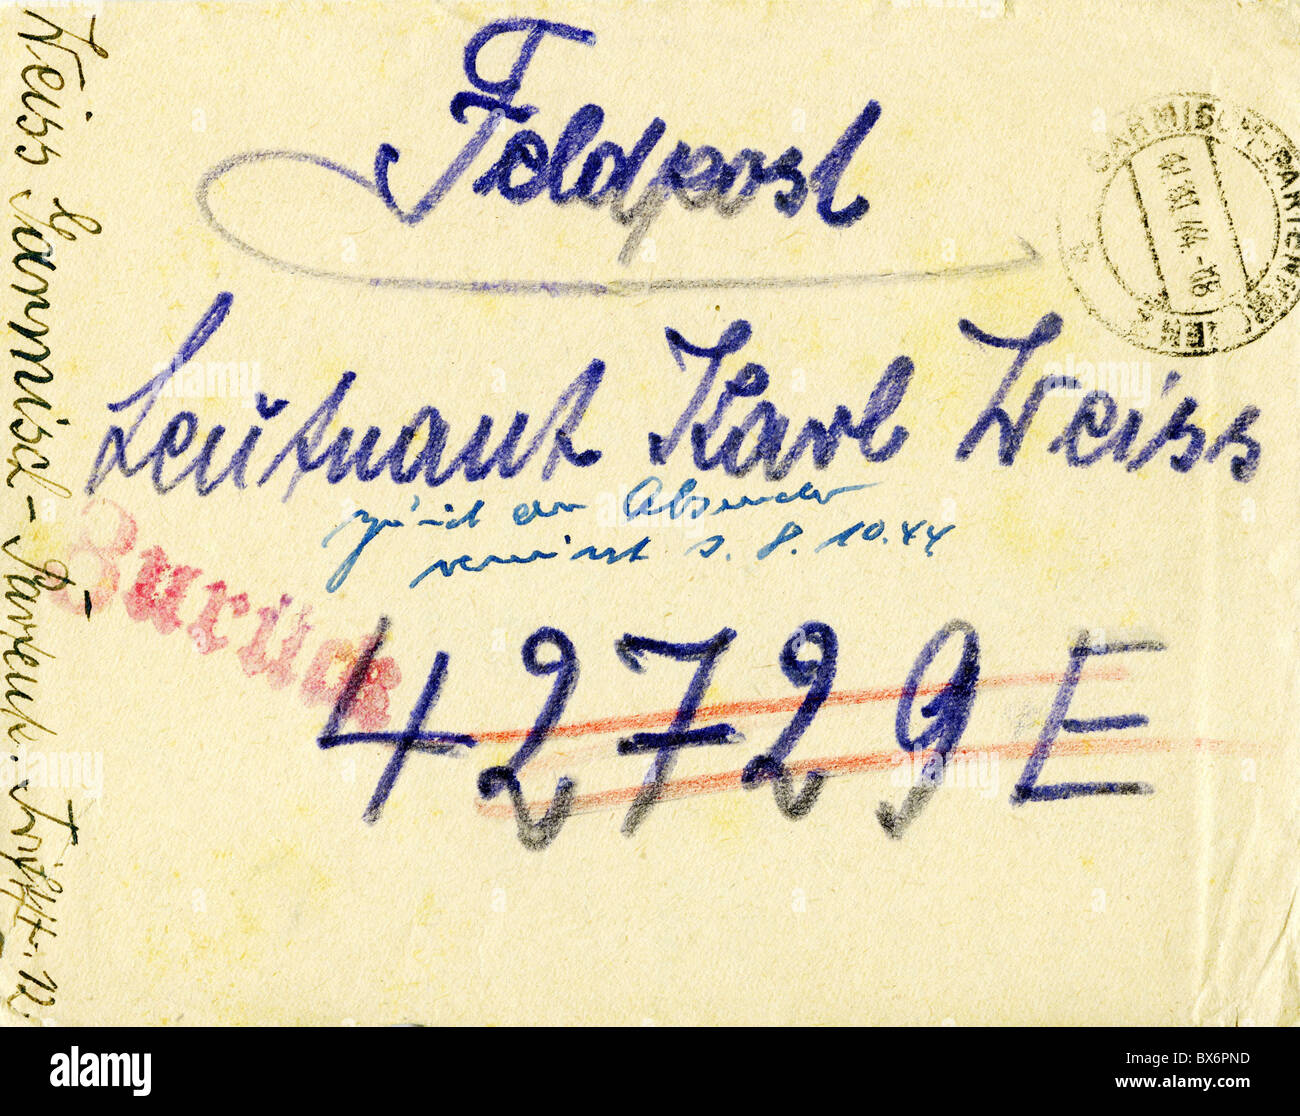 events, Second World War / WWII, Germany, army postal service letter, addressed to Lieutenant Karl Weiss, returned - Stock Image